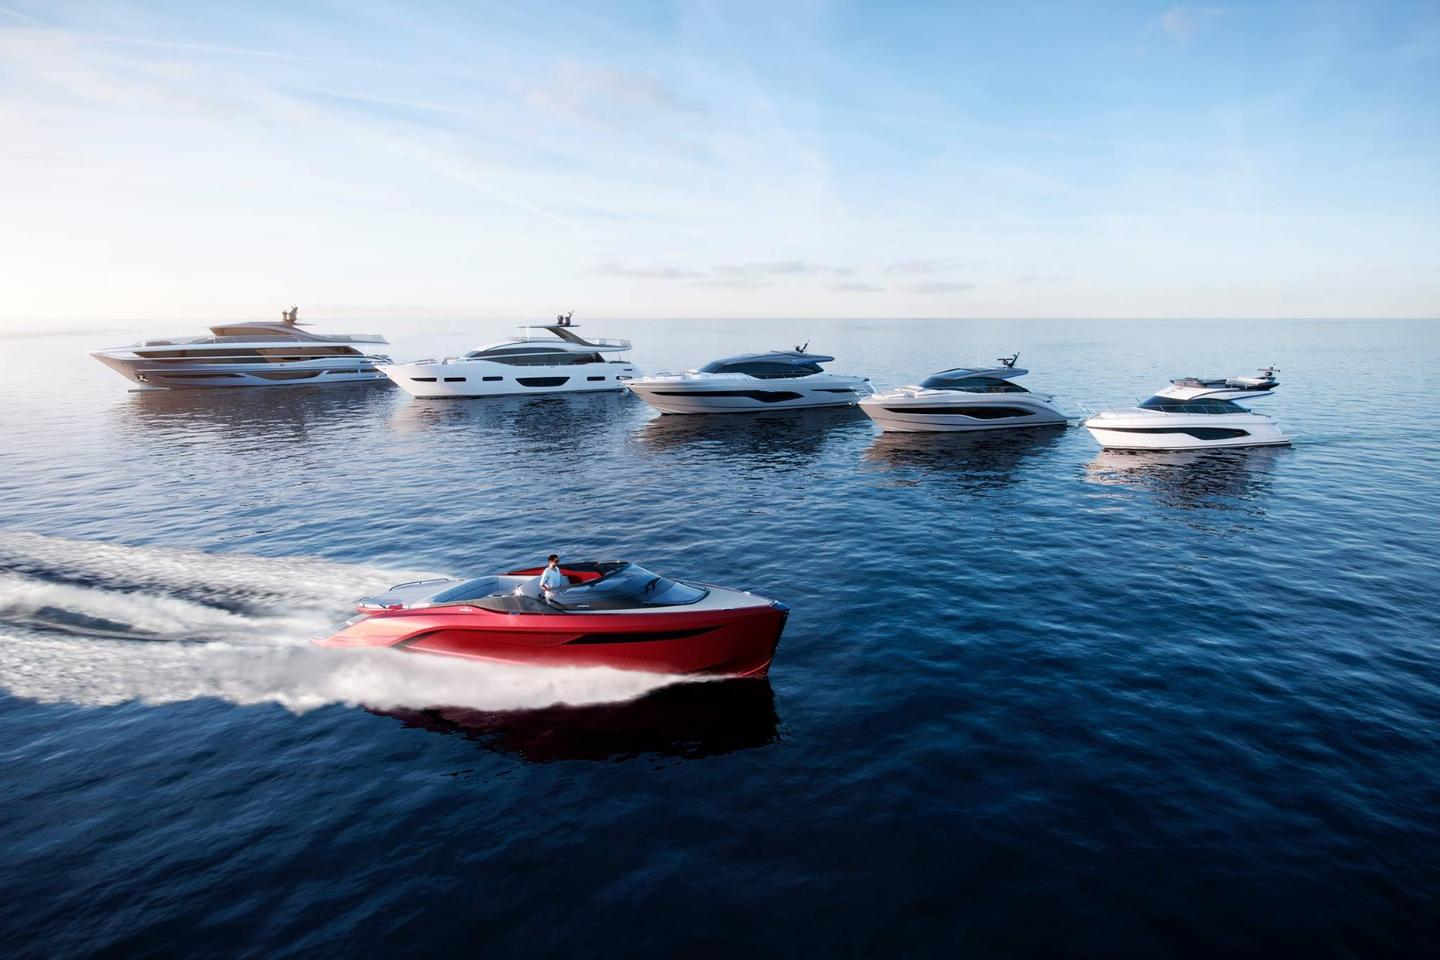 This won't be the last we see from a Princess and Pininfarina collaboration, with the two companies also collaborating on the upcoming Princess X95 motor yacht pictured in the top left here